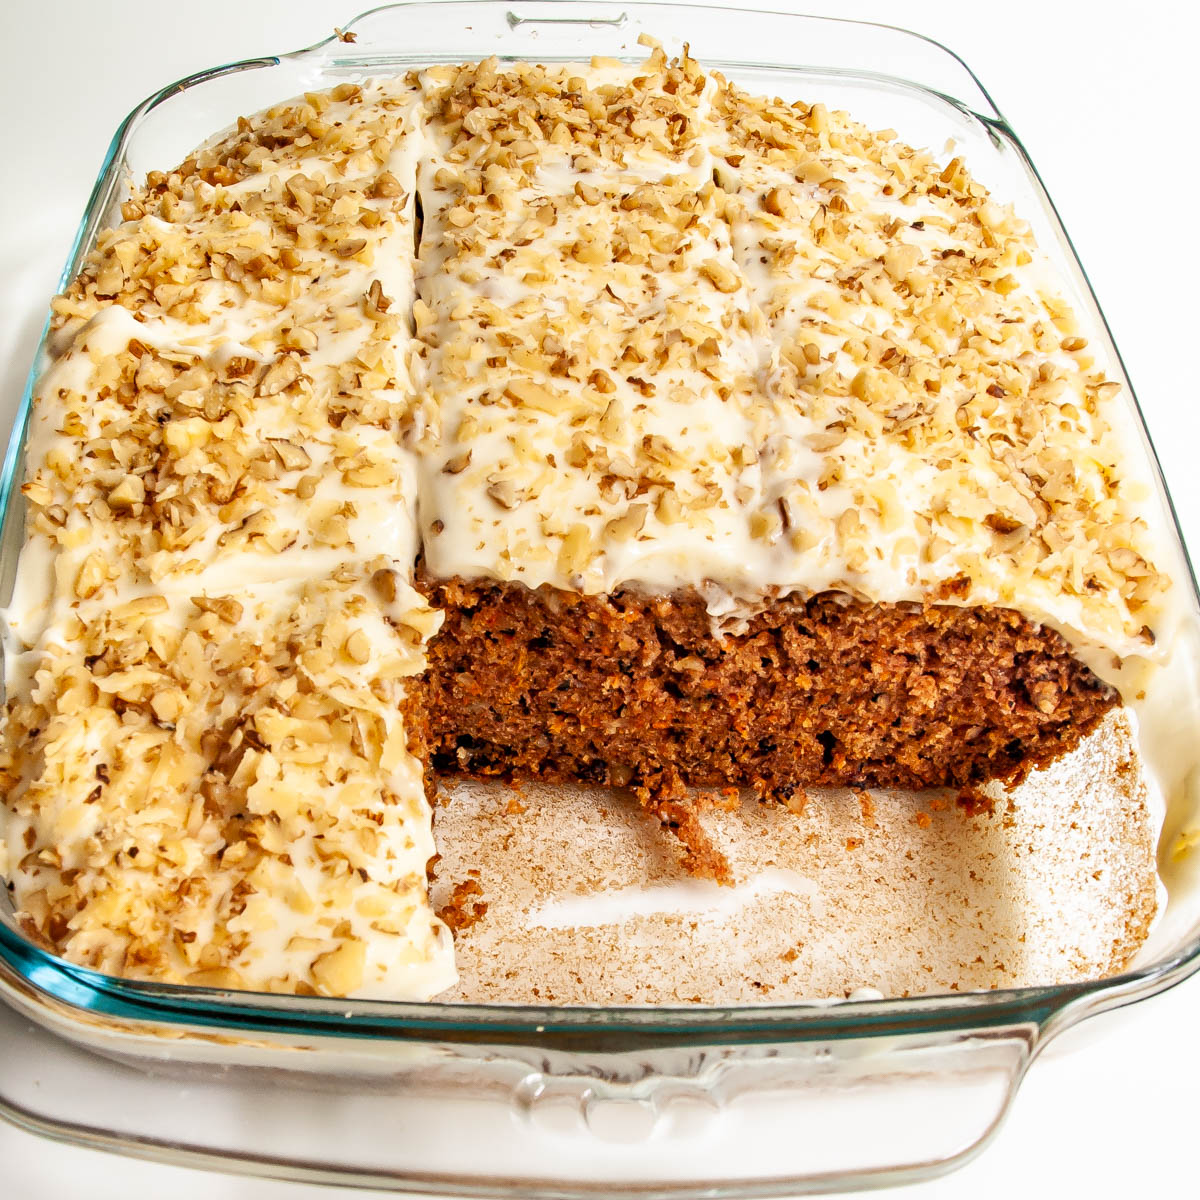 carrot cake in a baking dish topped with cream cheese icing and walnuts